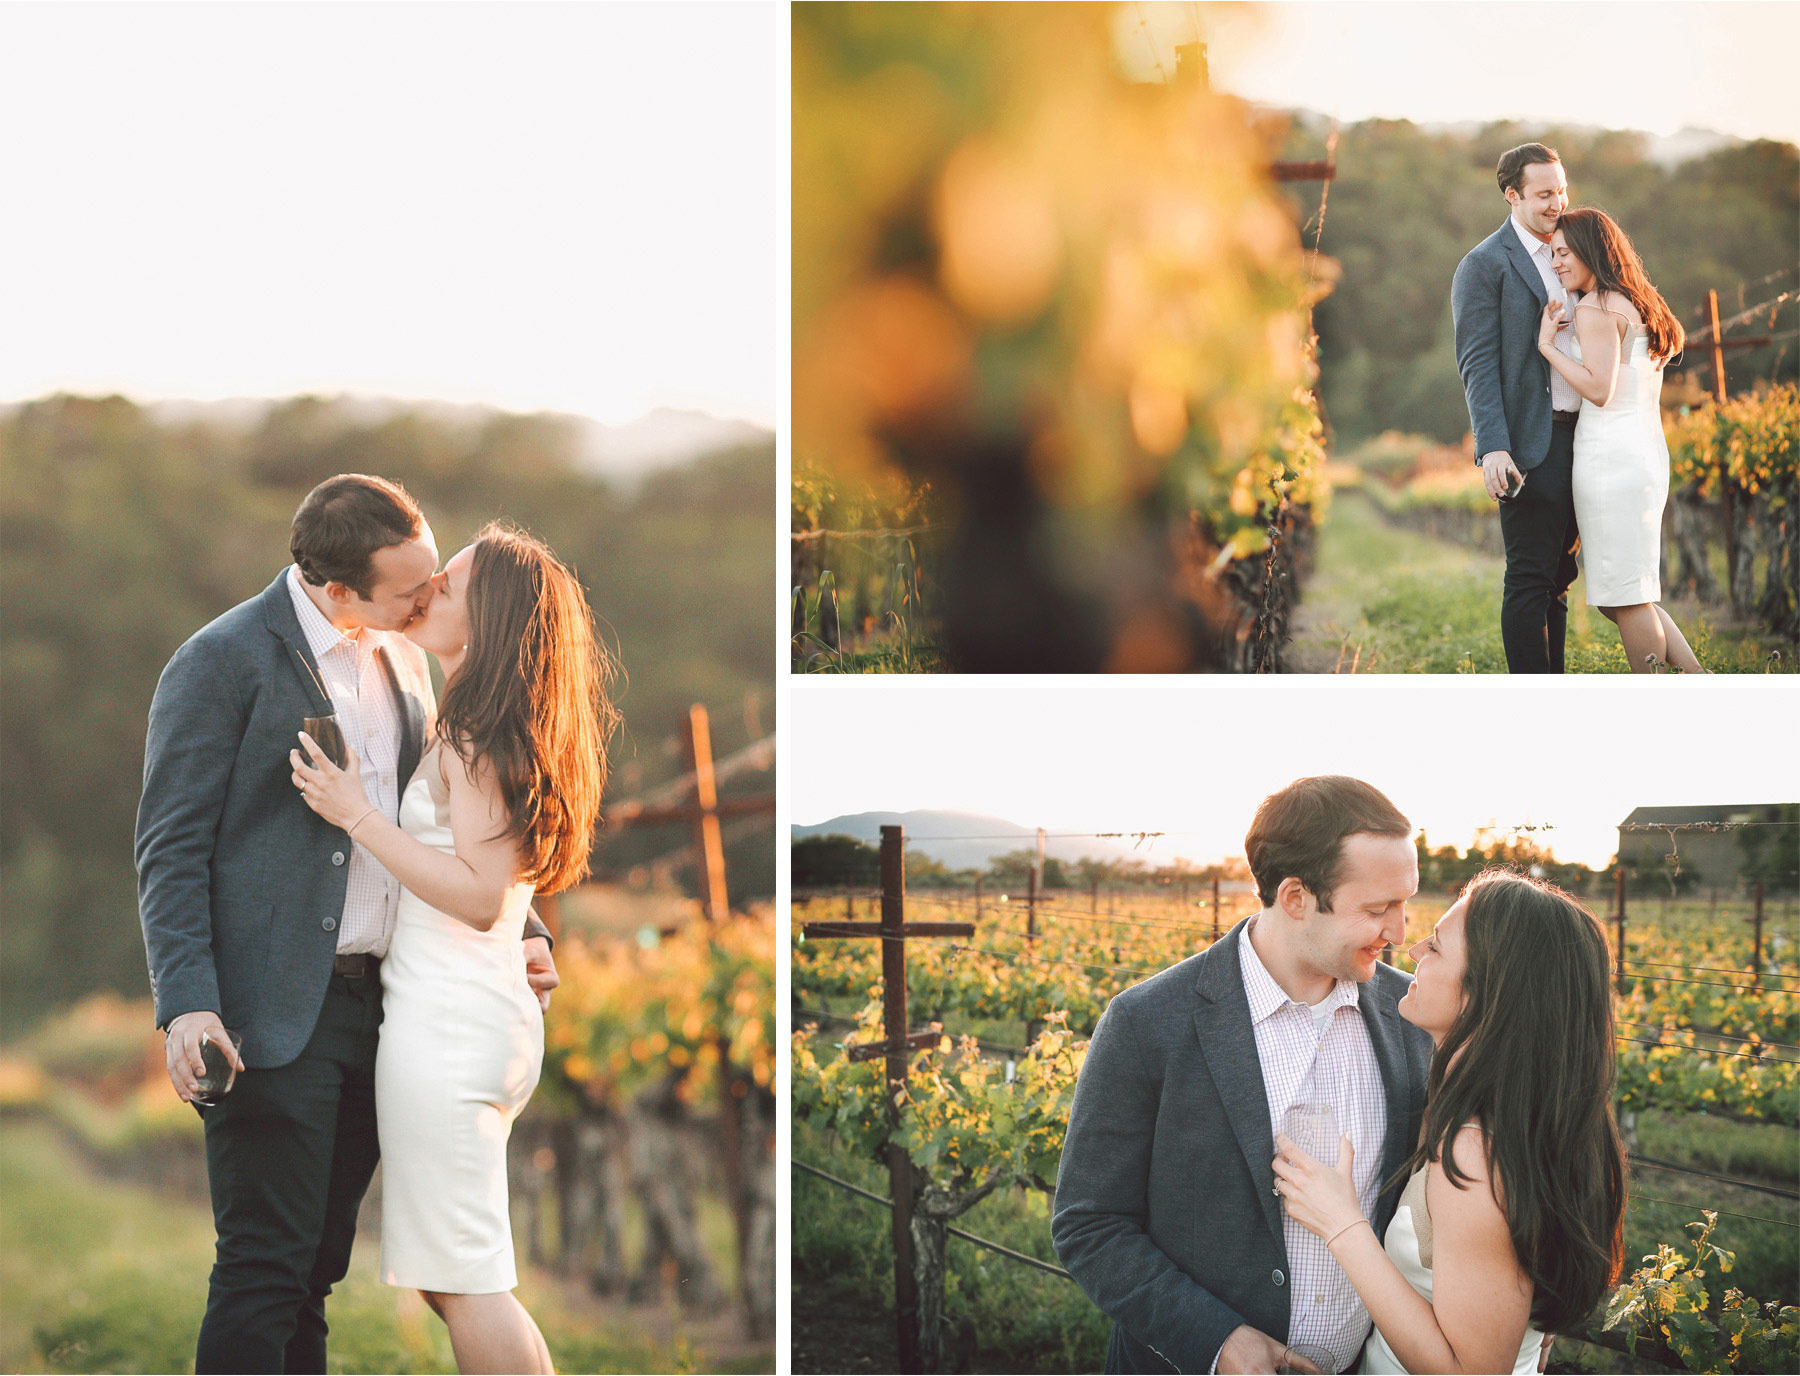 02-Napa-California-Wedding-Photographer-by-Andrew-Vick-Photography-Spring-Destination-Paraduxx-Winery-Vinyard-Rehearsal-Bride-Groom-Kiss-Wine-Embrace-Vintage-Alex-and-Roger.jpg